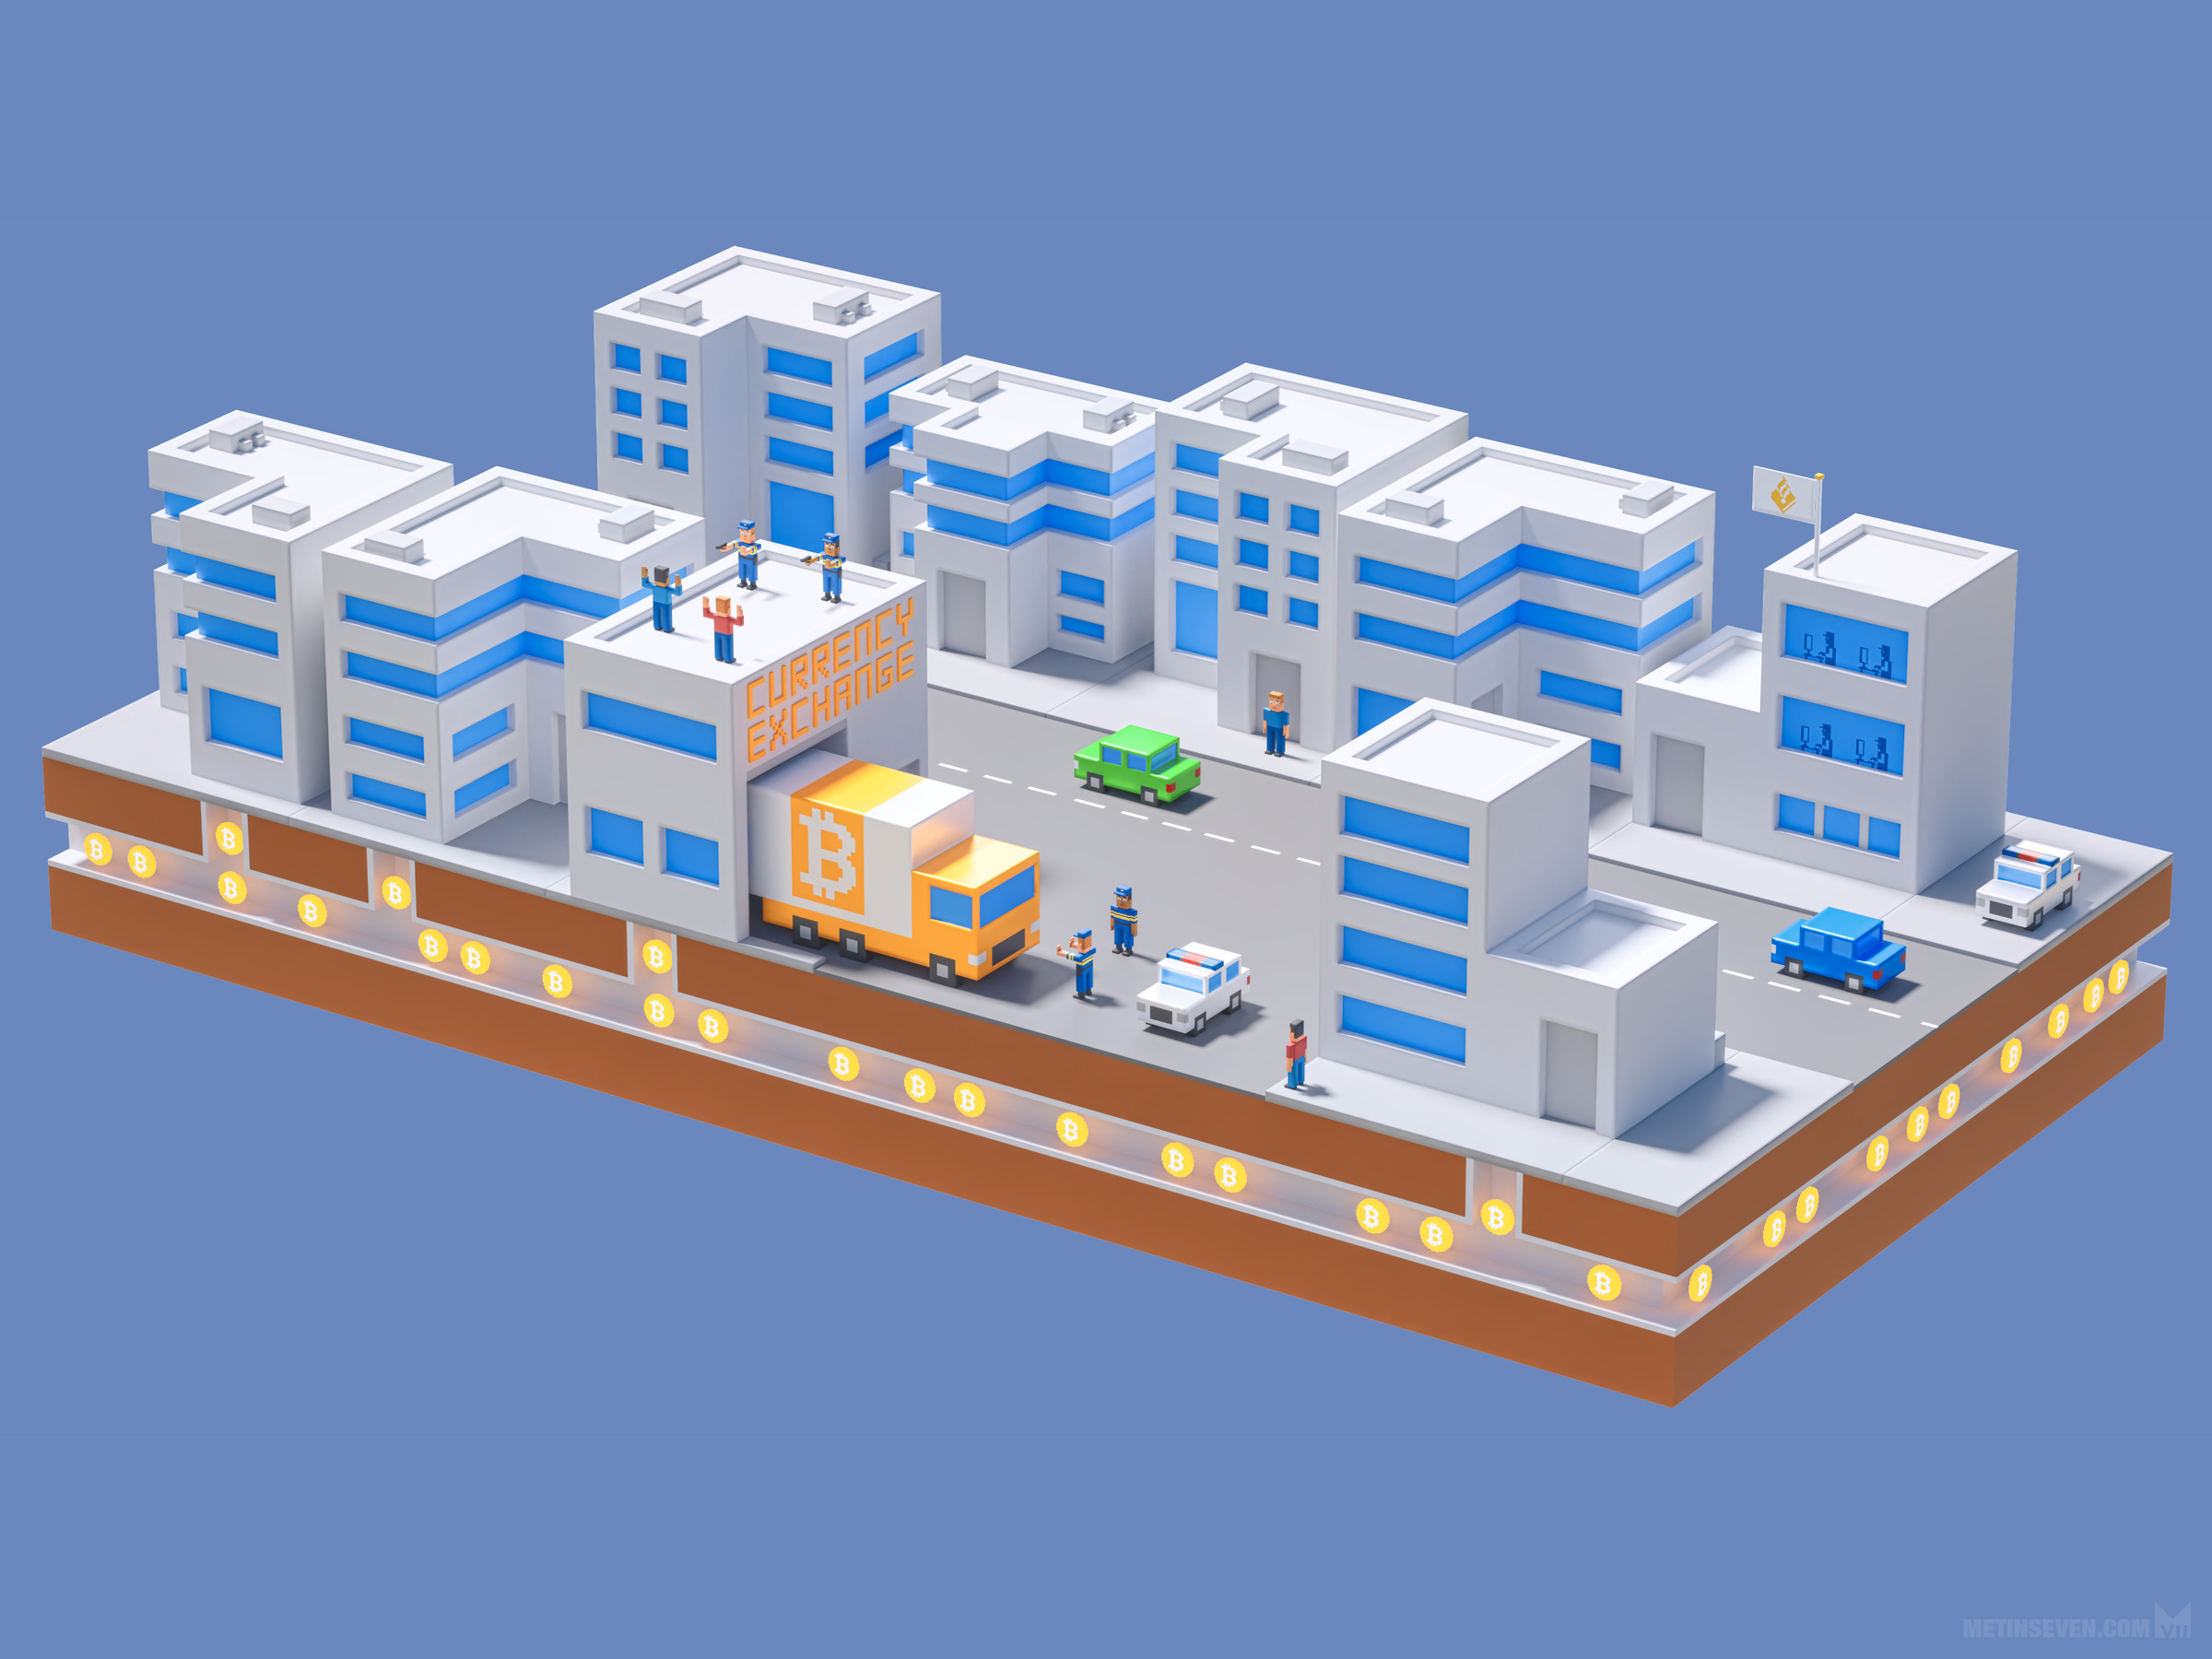 Isometric voxel-style Bitcoin money laundering crime infographics illustration for the Dutch National Police Corps